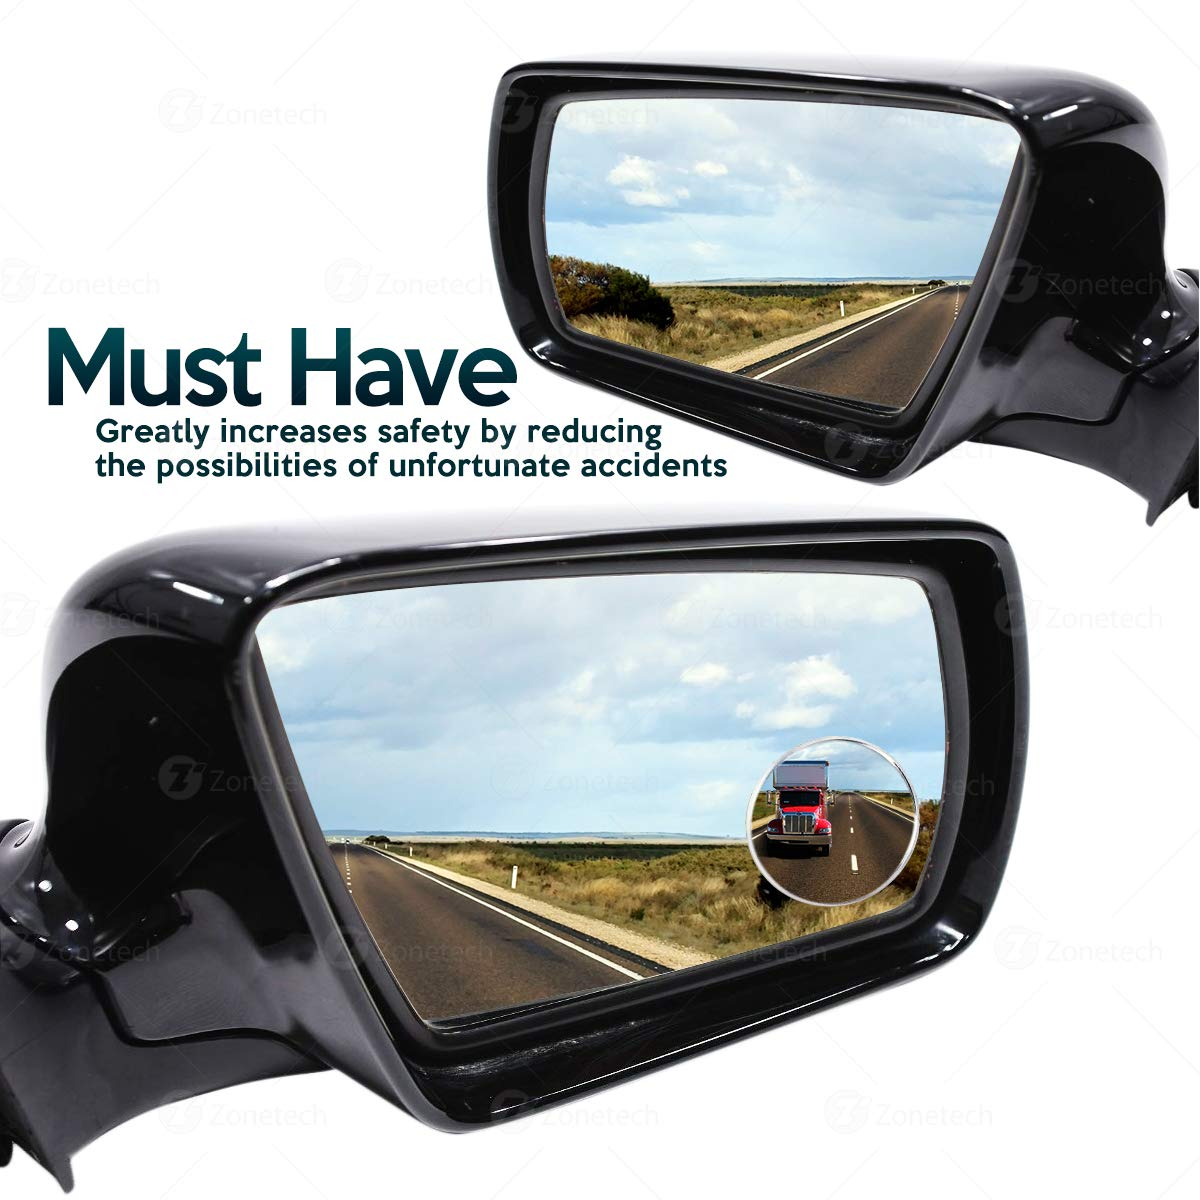 Rearview Aluminum Border Vehicle Mirrors Comfort Wheels MI0001 ZONETECH Car Round Blind Spot Mirror-Zone Tech Thin Universal Fit-2 inch Stick on SUV